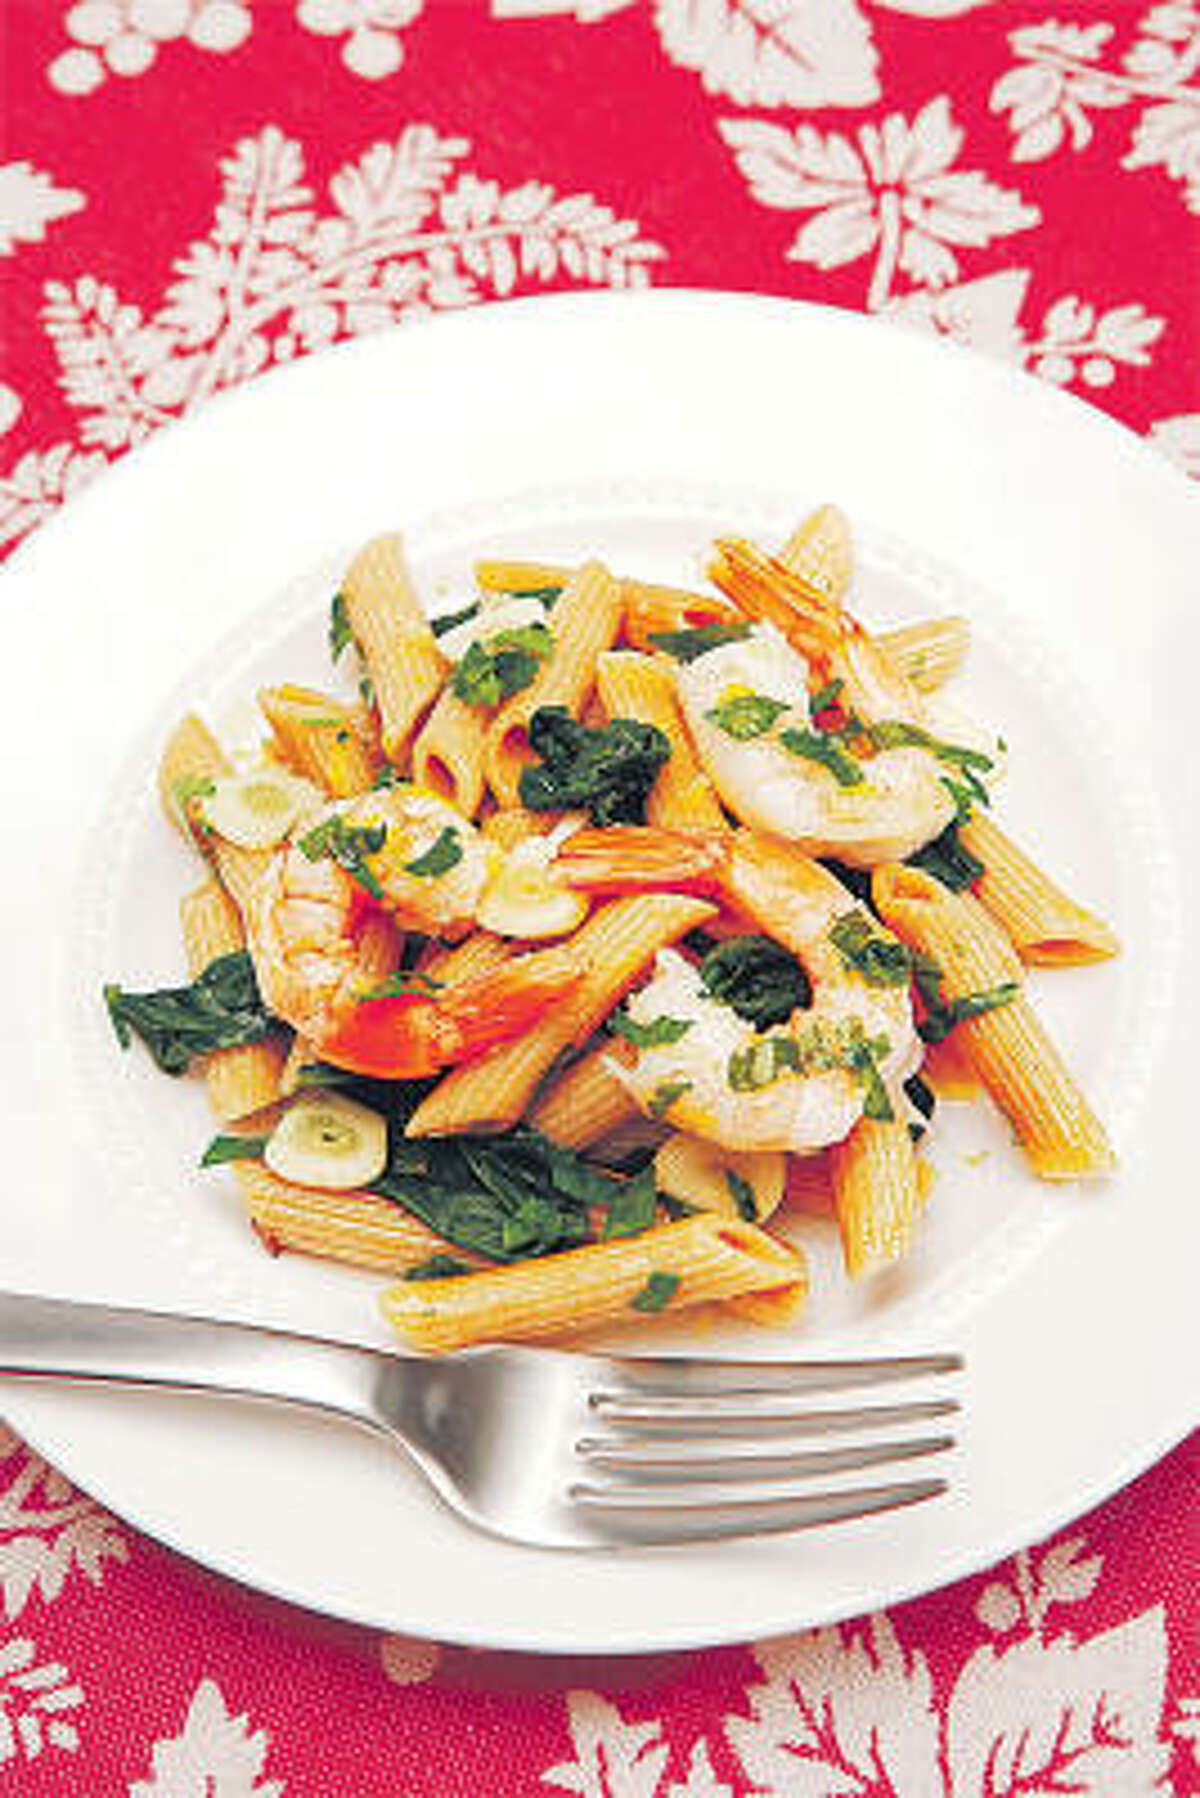 Judy Boehm's Scrumptious Shrimp and Spinach Pasta